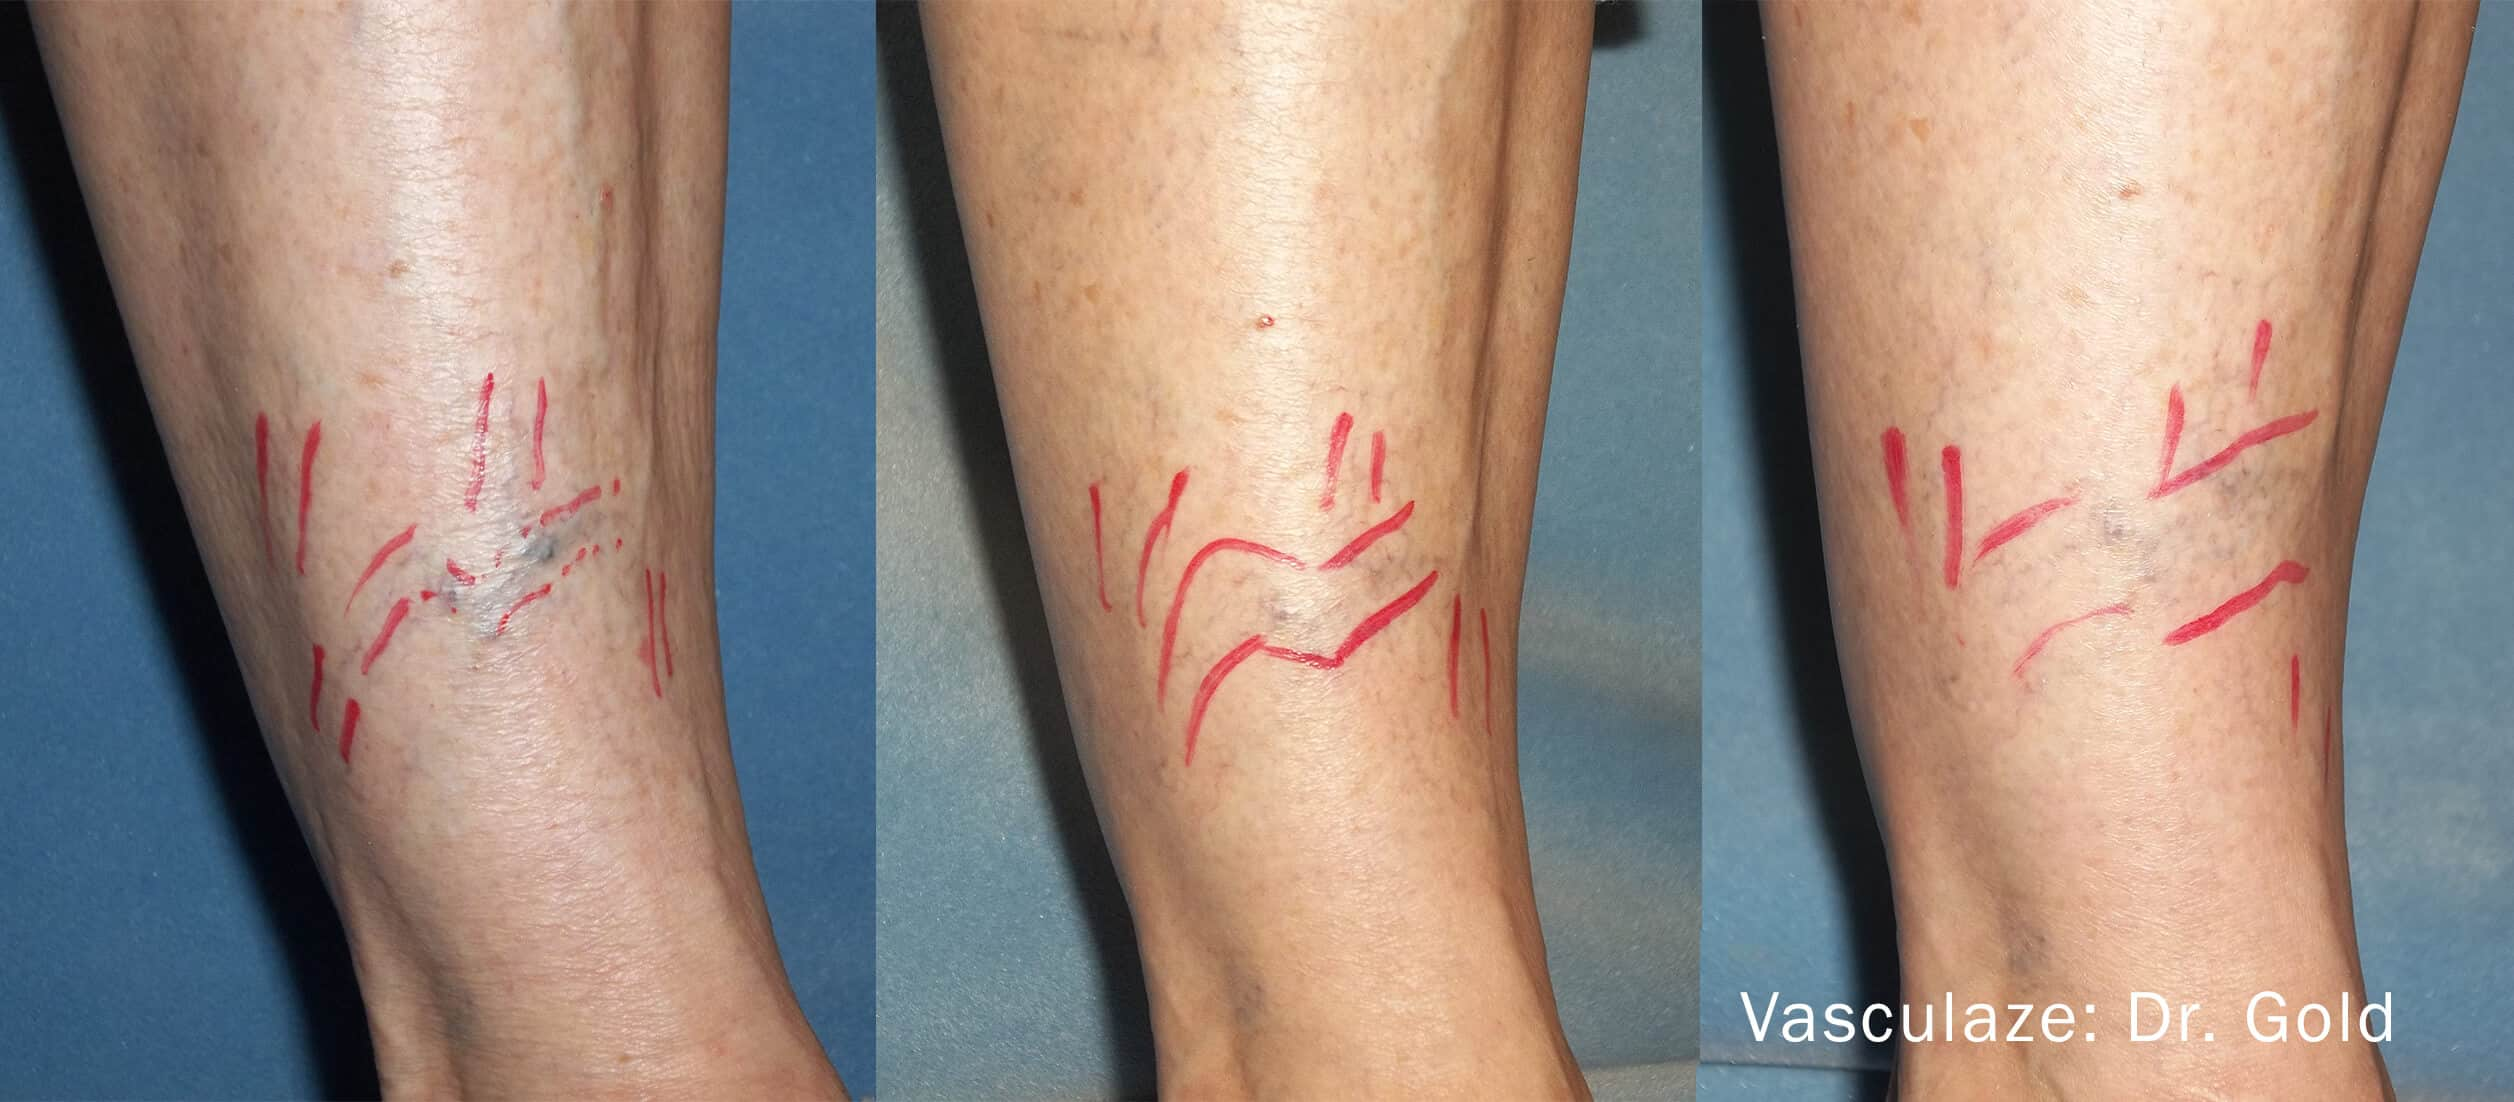 Leg Vein Reduction - Patient Before and After Gallery – Photo 12